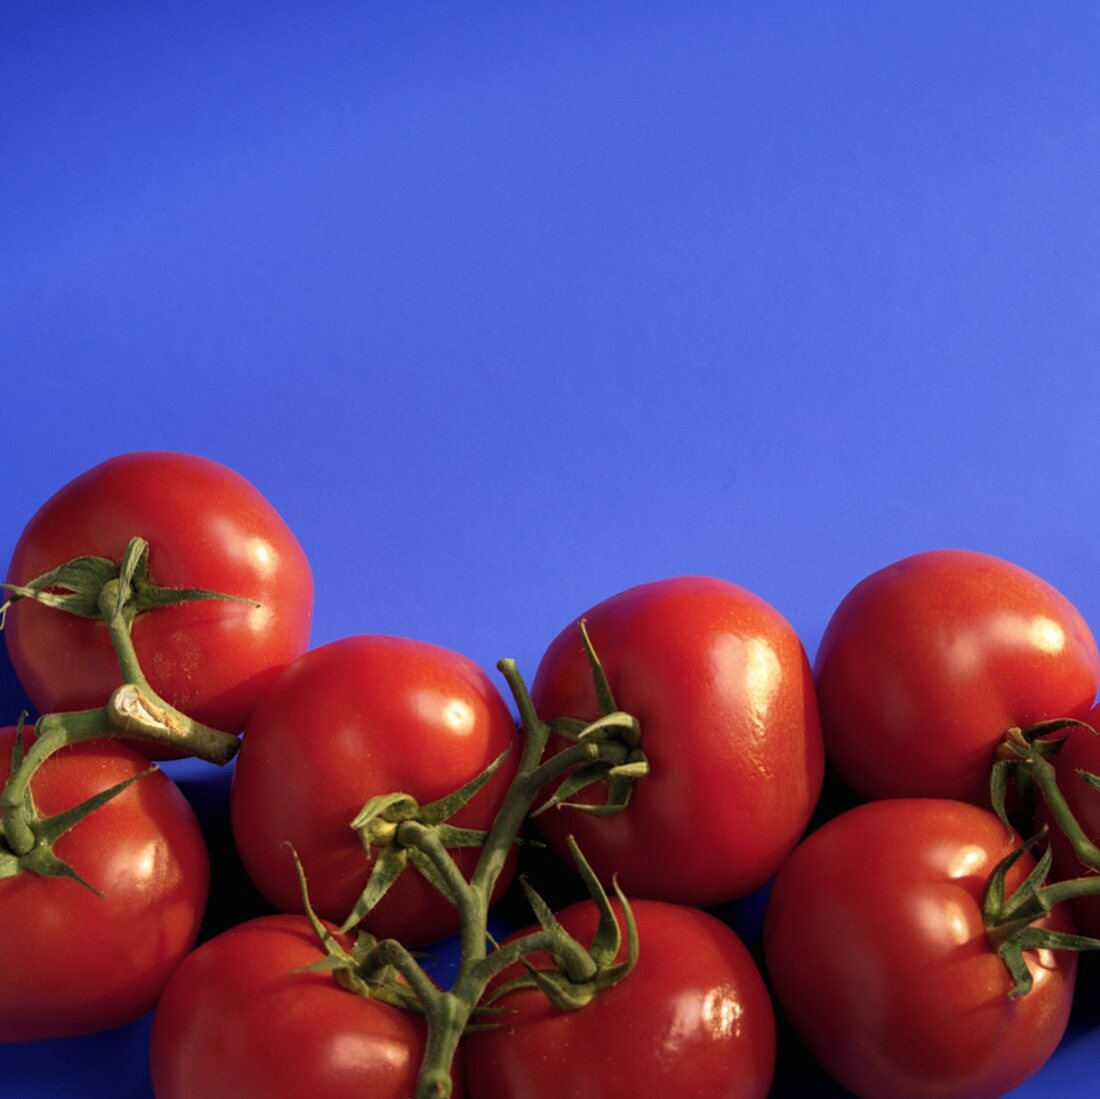 Vine Ripened Tomatoes on a Blue Background